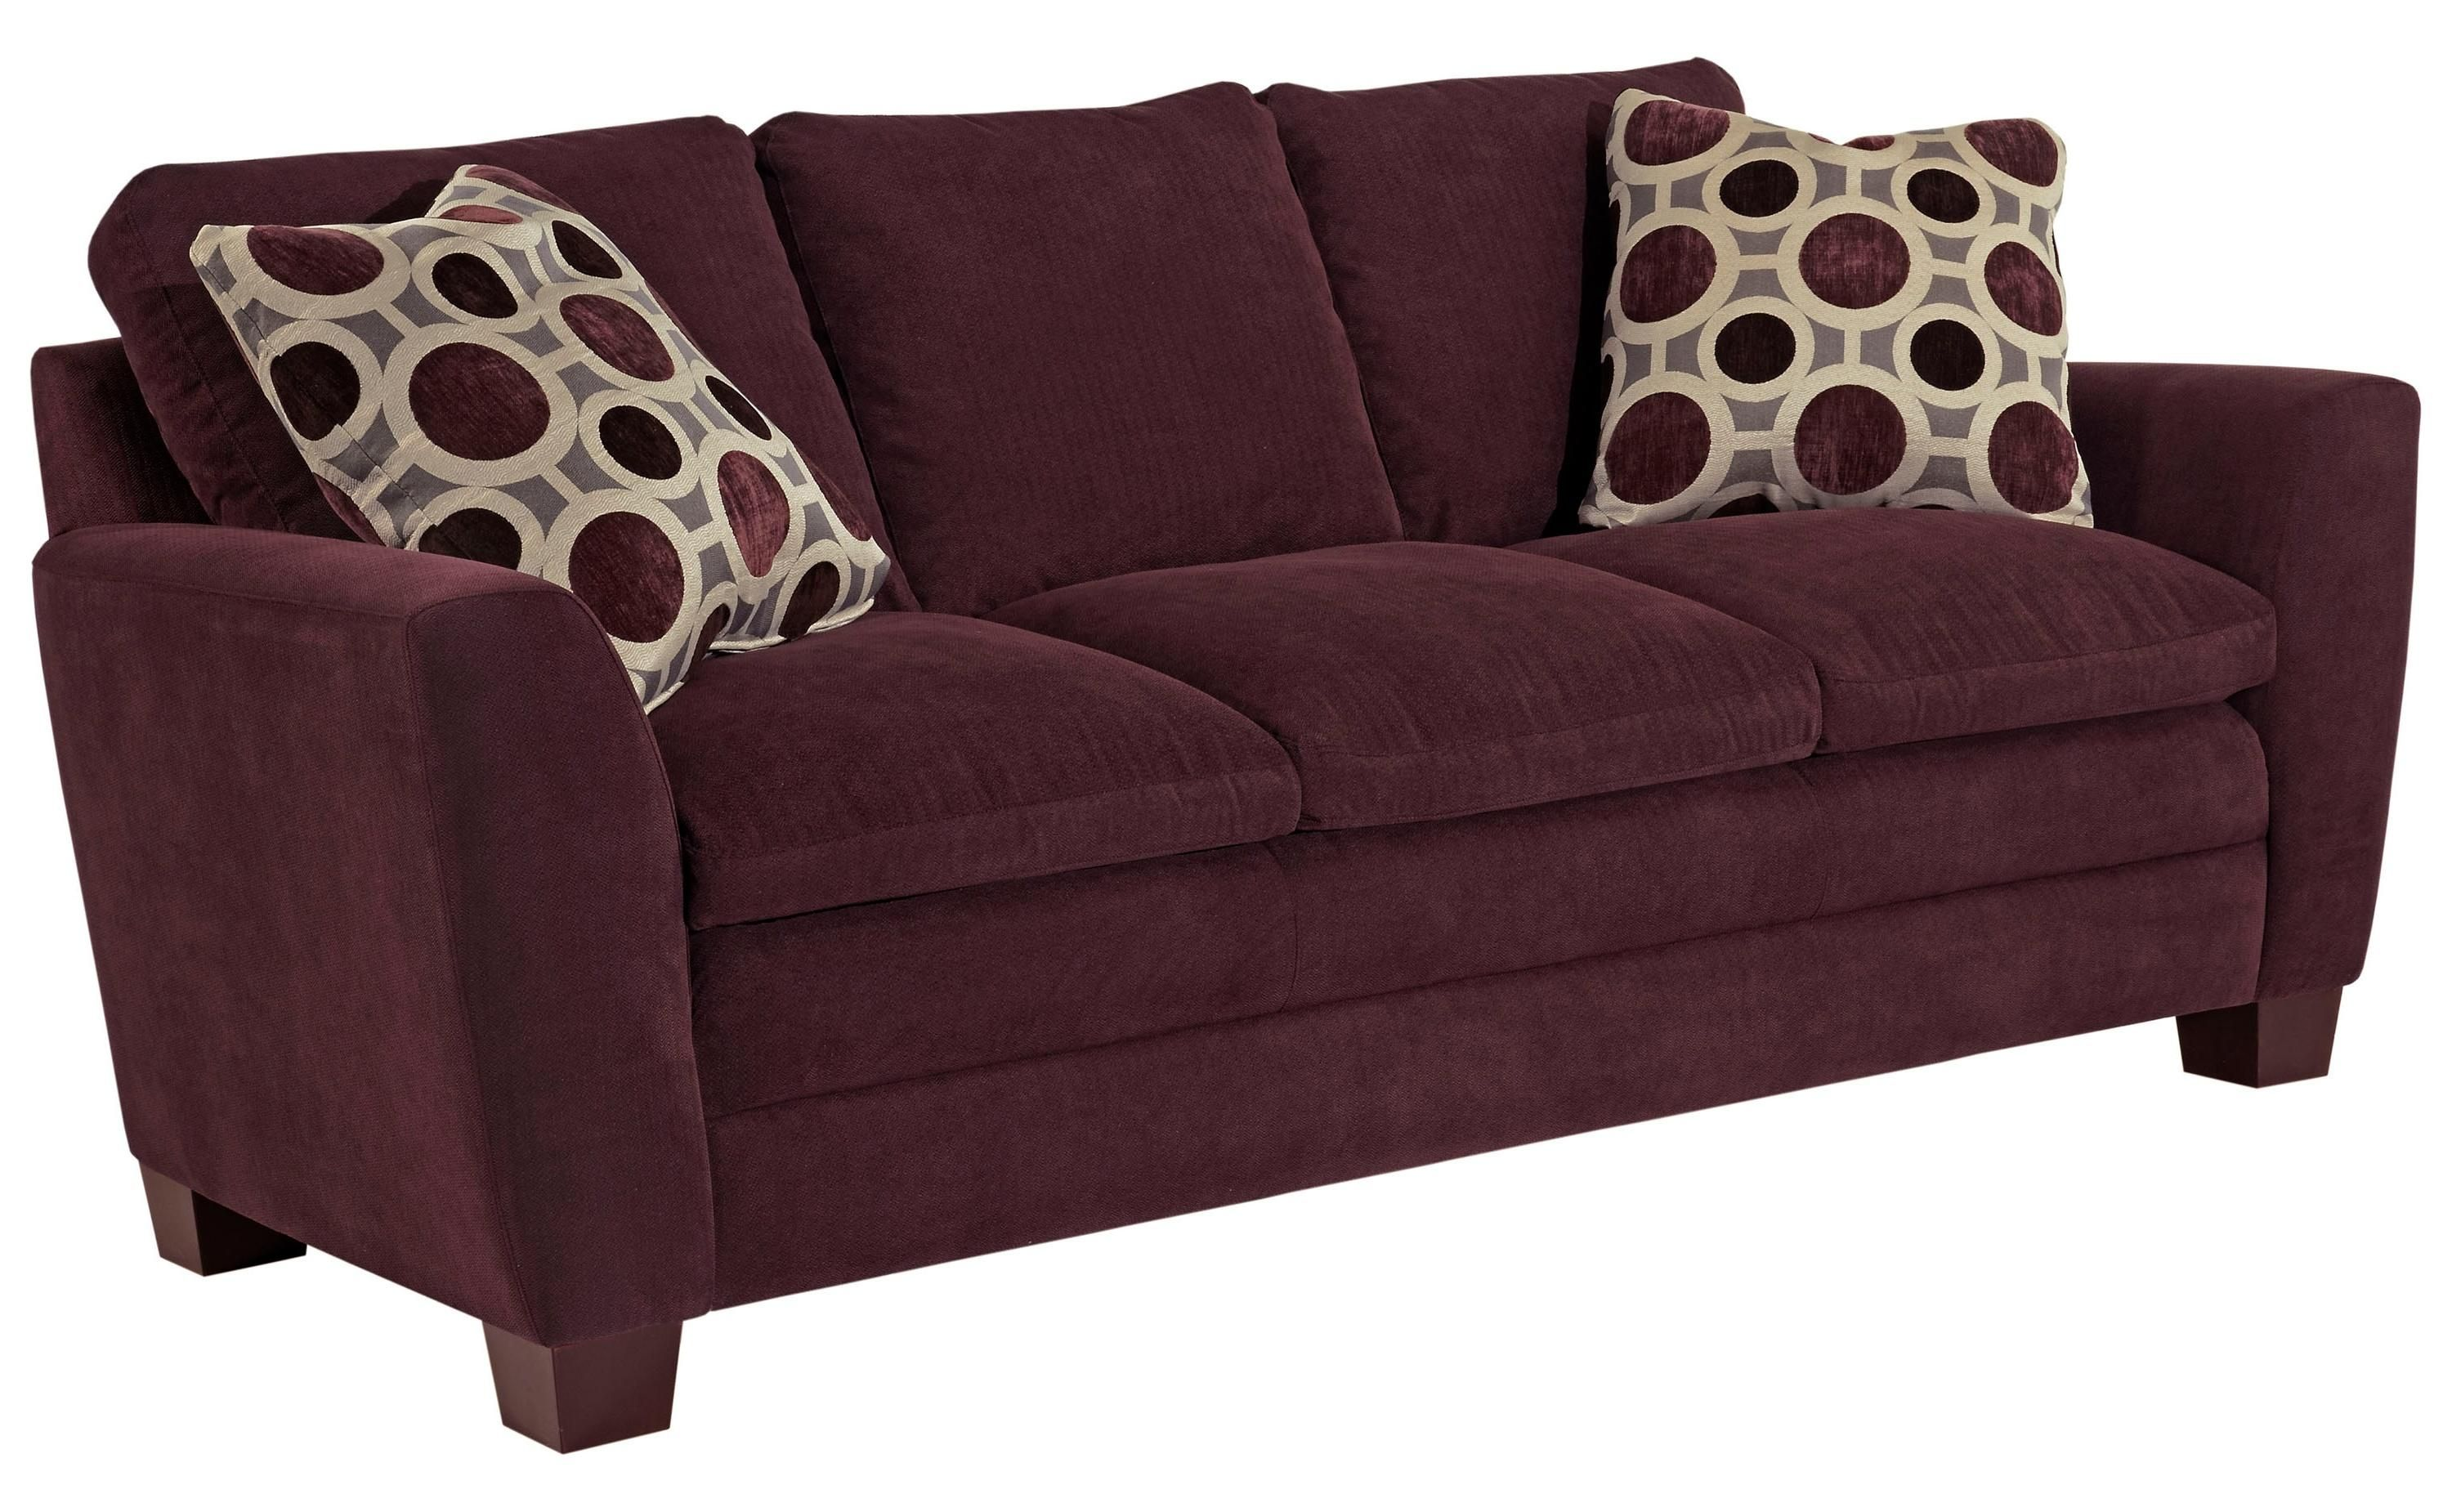 Plum Colored Courtney Sofa by Broyhill Furniture   Color ...